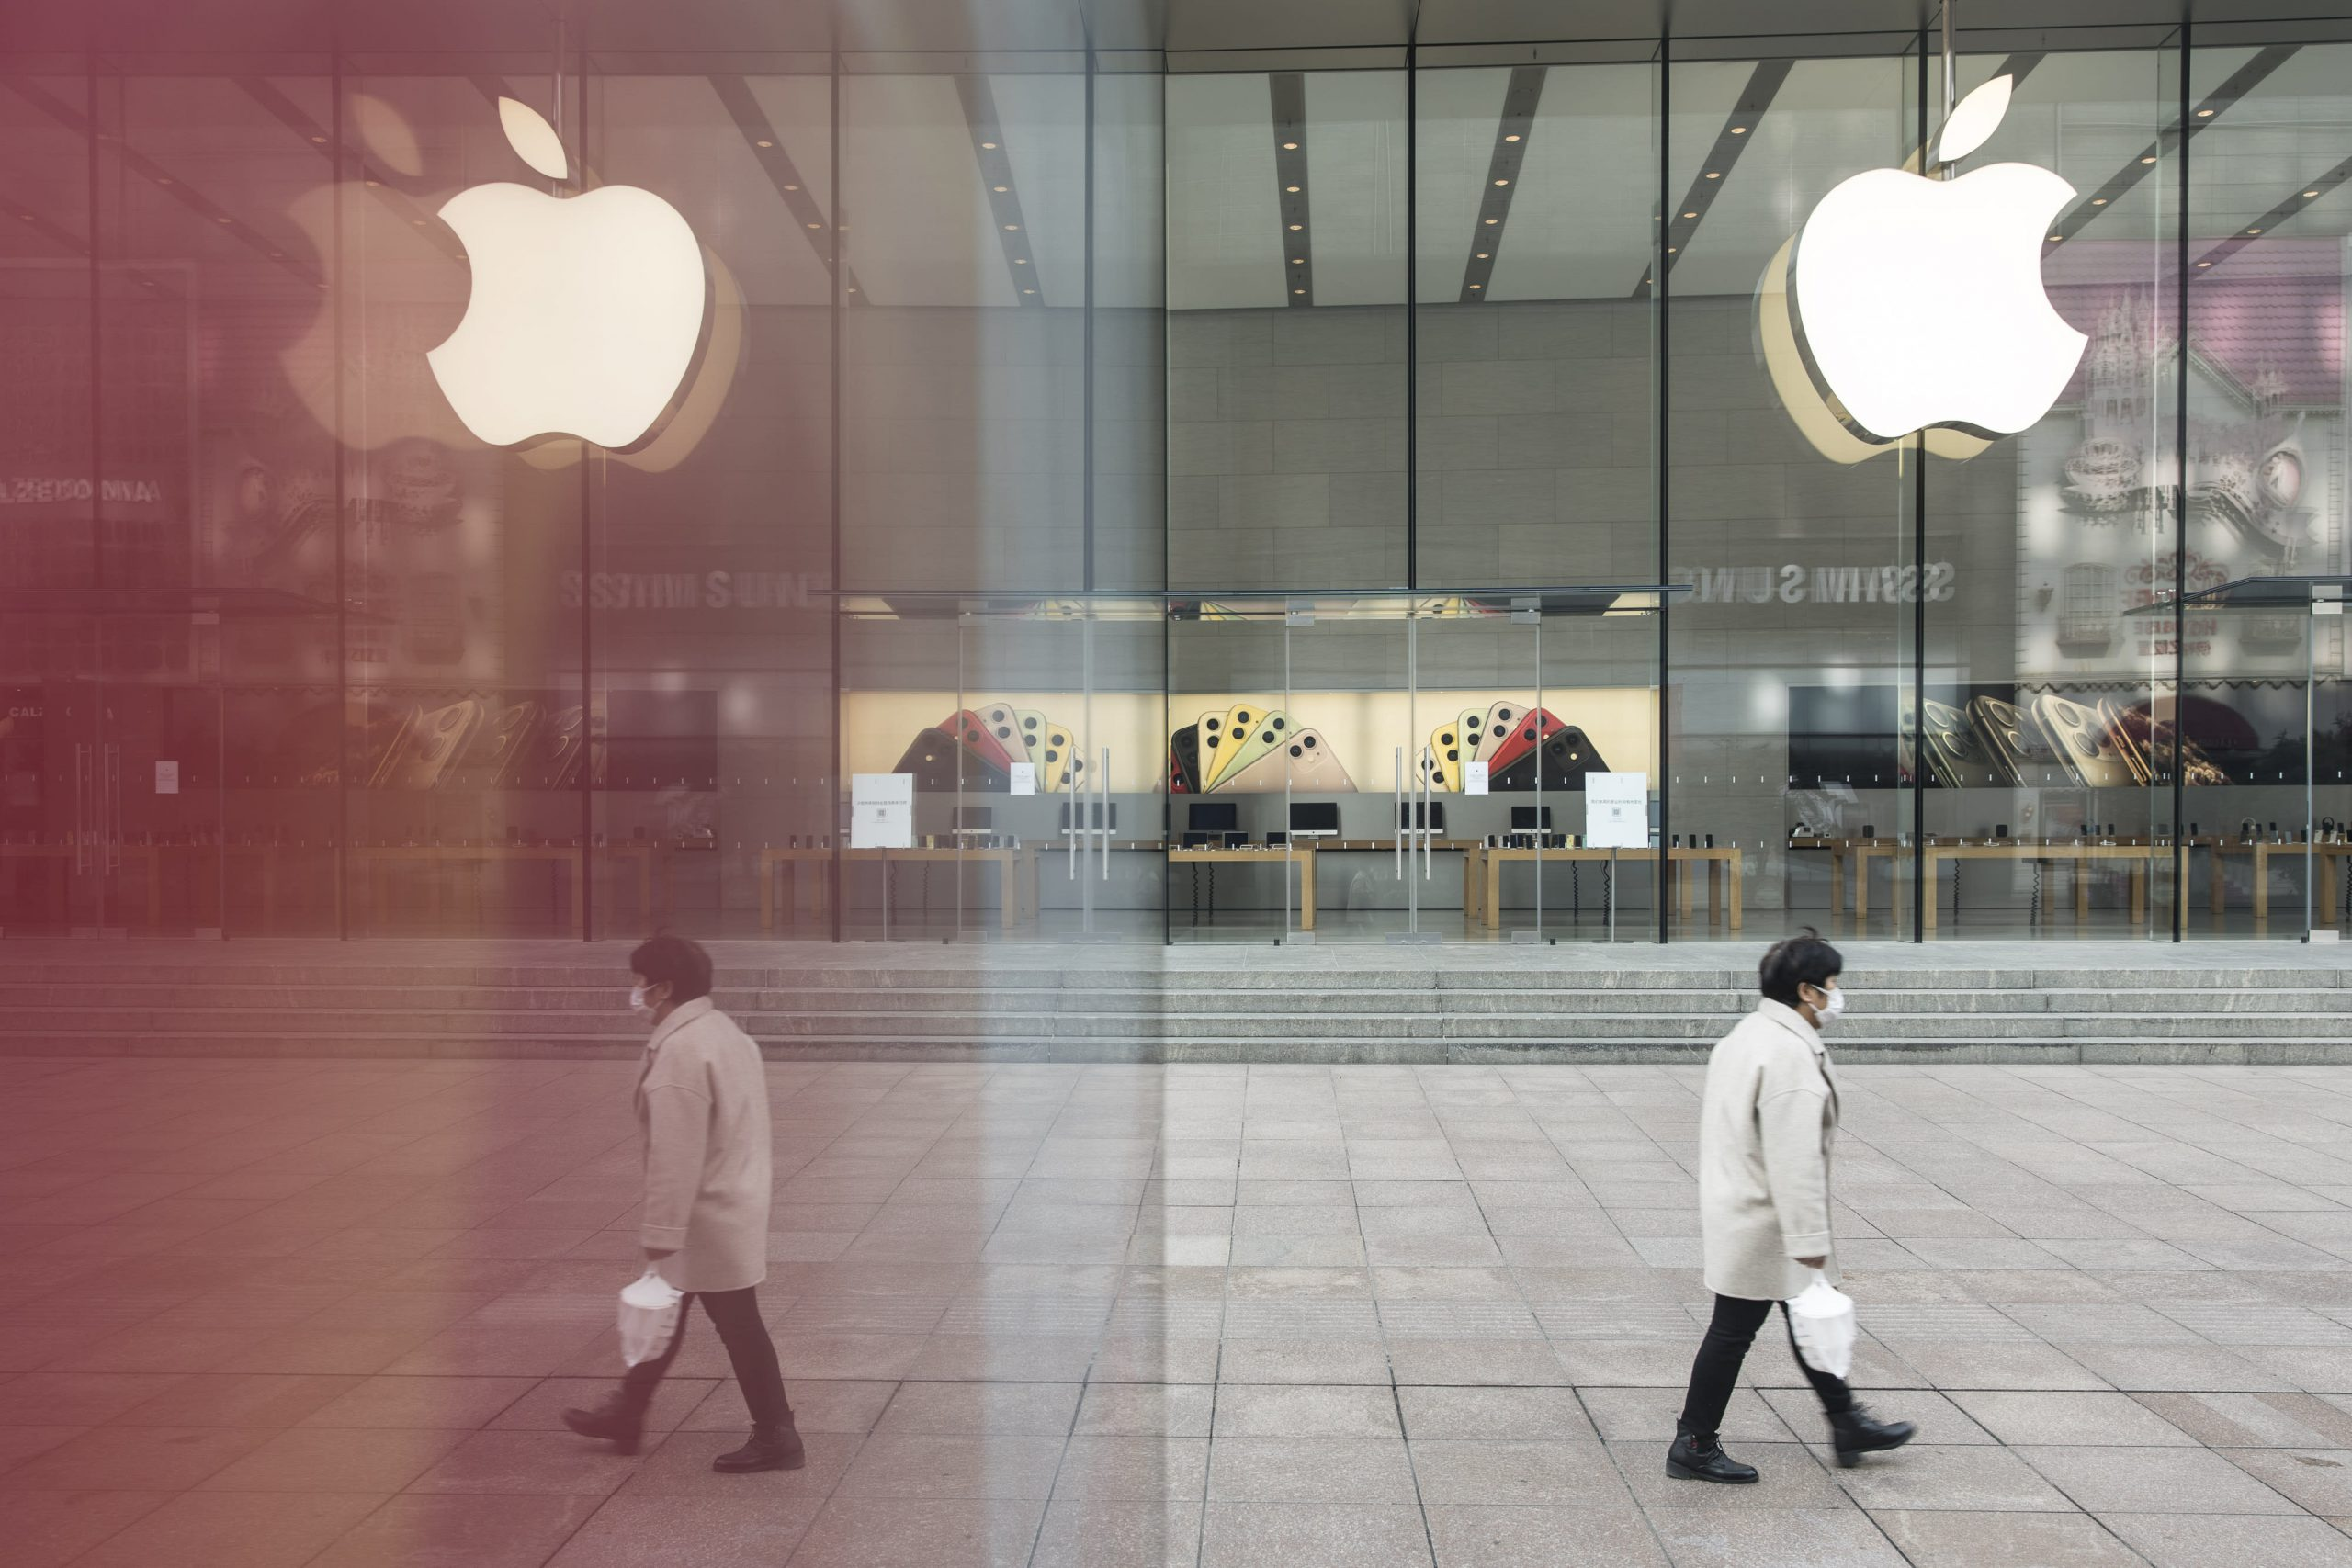 US futures down more than 100 points after Apple issues revenue warning